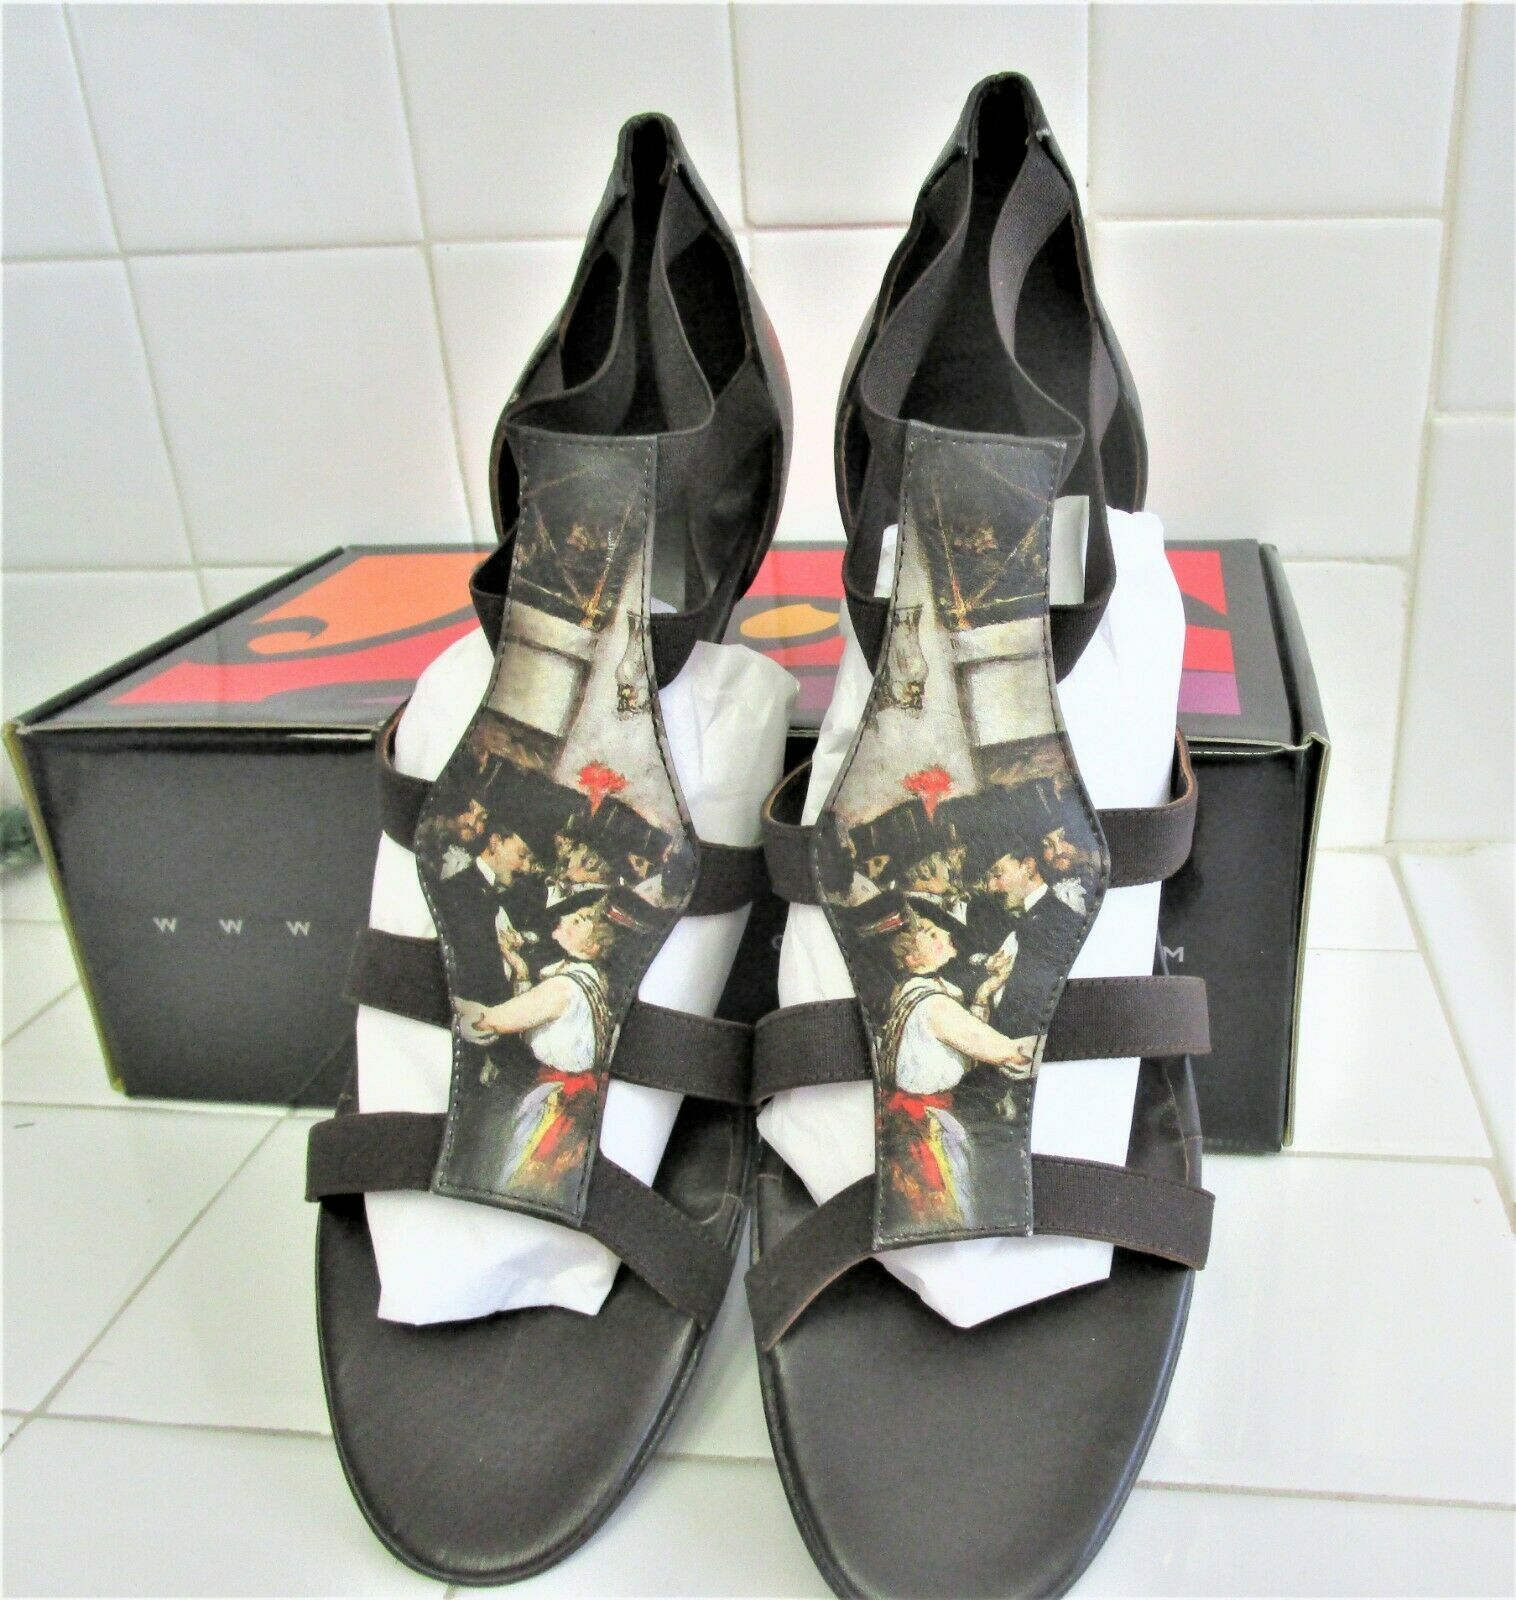 ICON SHOES   MASKED BALL OPERA   STRAP SANDALS  SMALL HEEL   BRAND NEW IN BOX